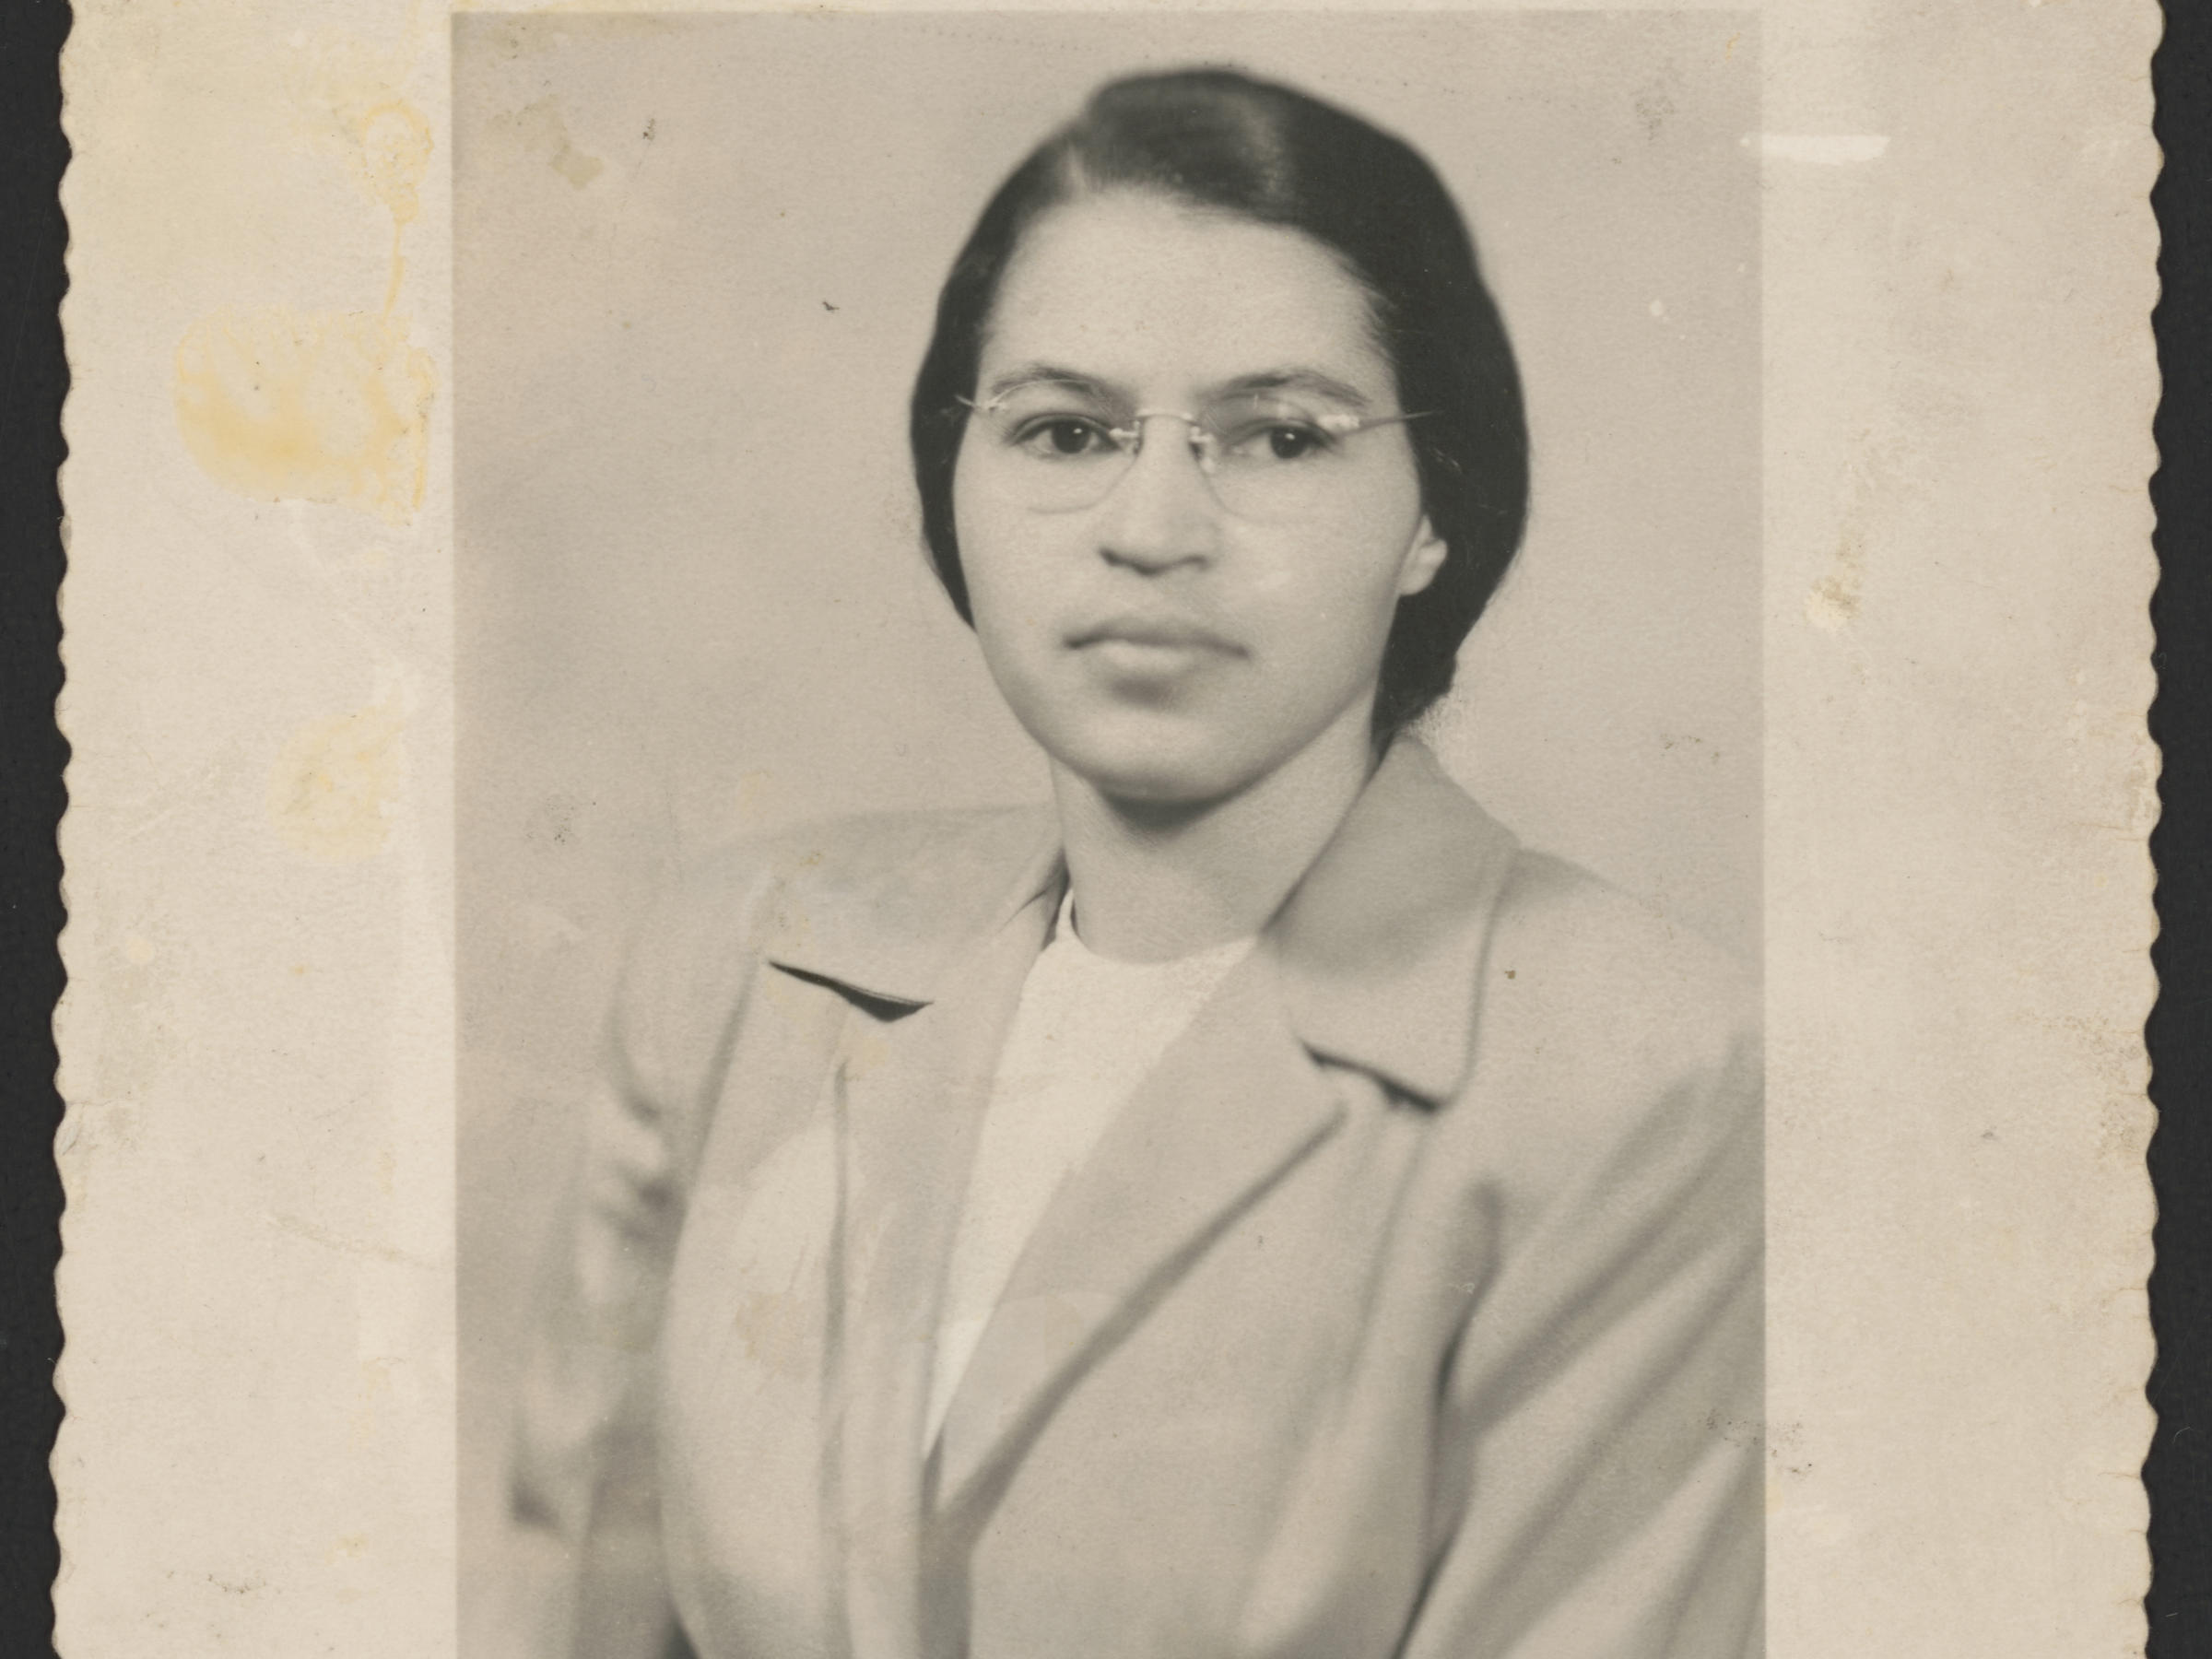 After Years In Lockdown Rosa Parks Papers Head To